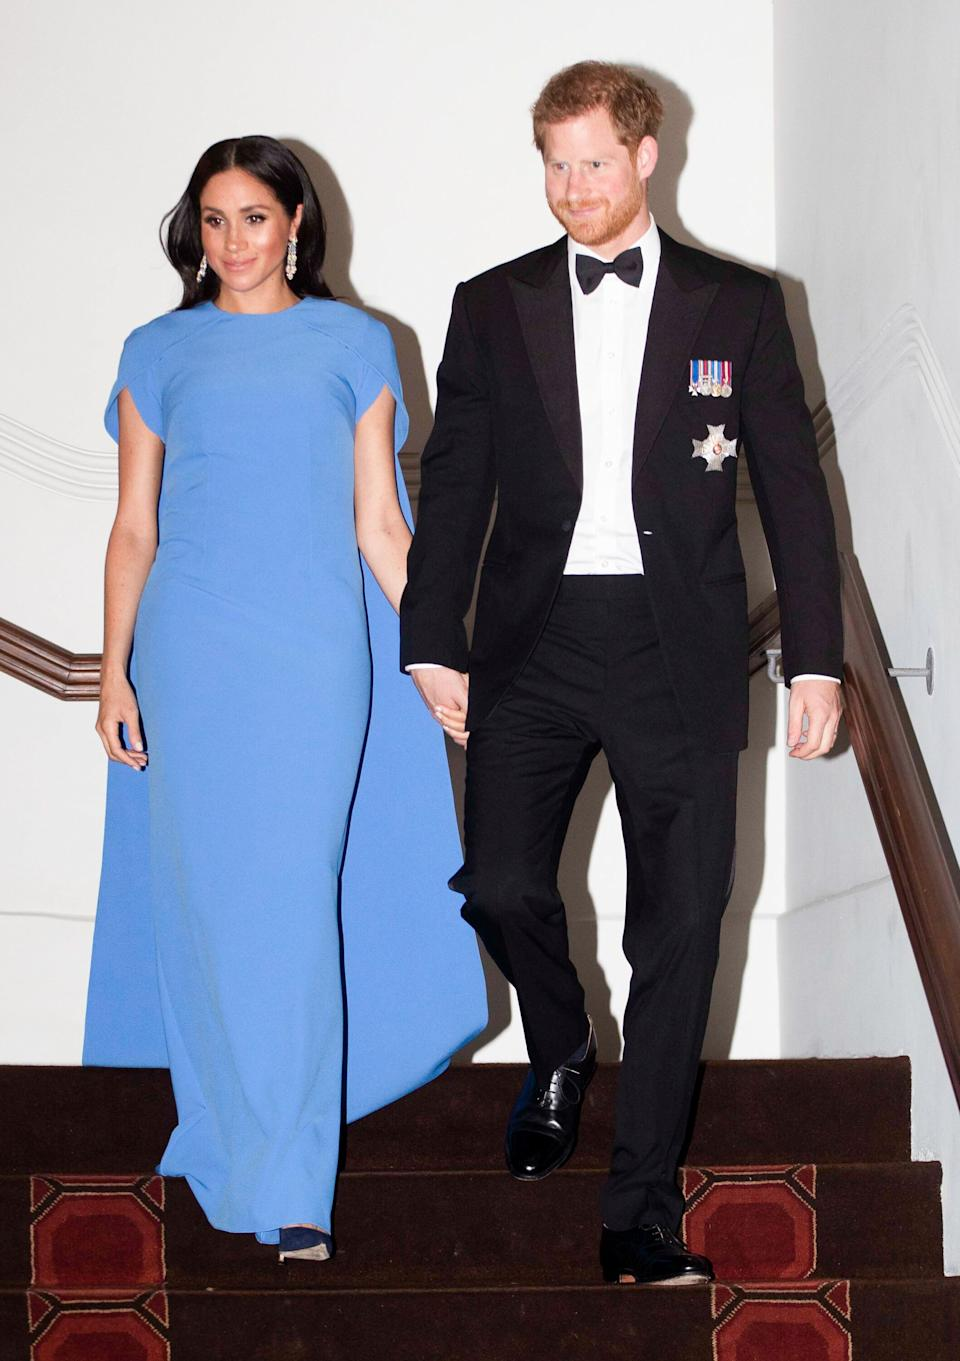 The Duchess Of Sussex wore a similar caped gown in sky blue on October 23, 2018 [Photo: Getty]